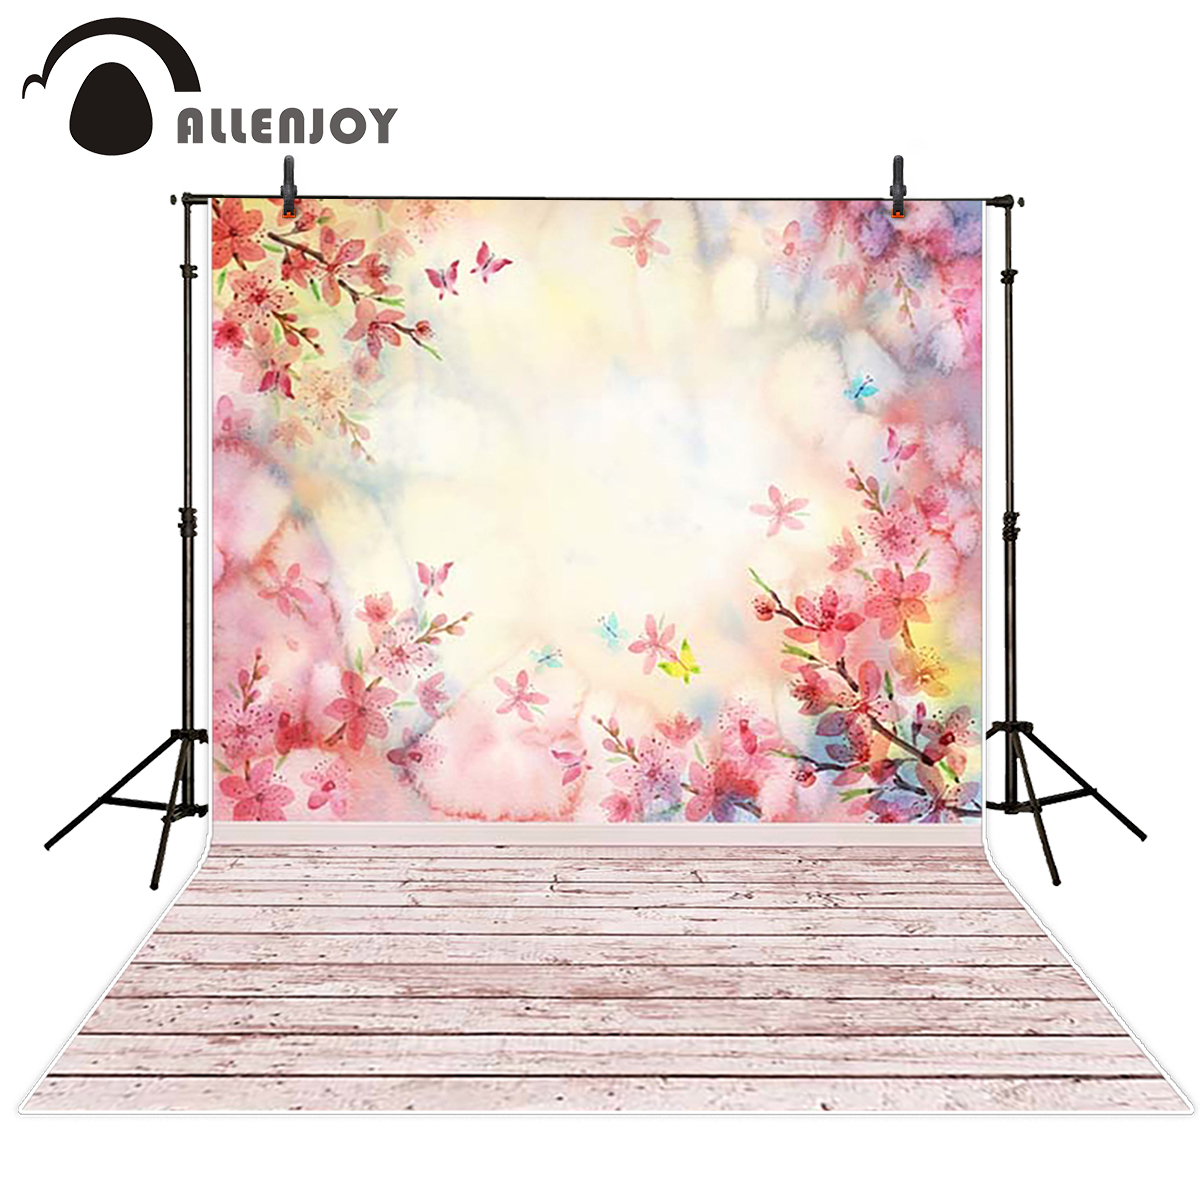 Allenjoy scenic Photo background Spring peach blossom pink gouache on wood board background vinyl photography backdrops vinyl allenjoy photography backdrops pink curtains stripes birthday background customize photo booth for a photo shoot vinyl backdrops